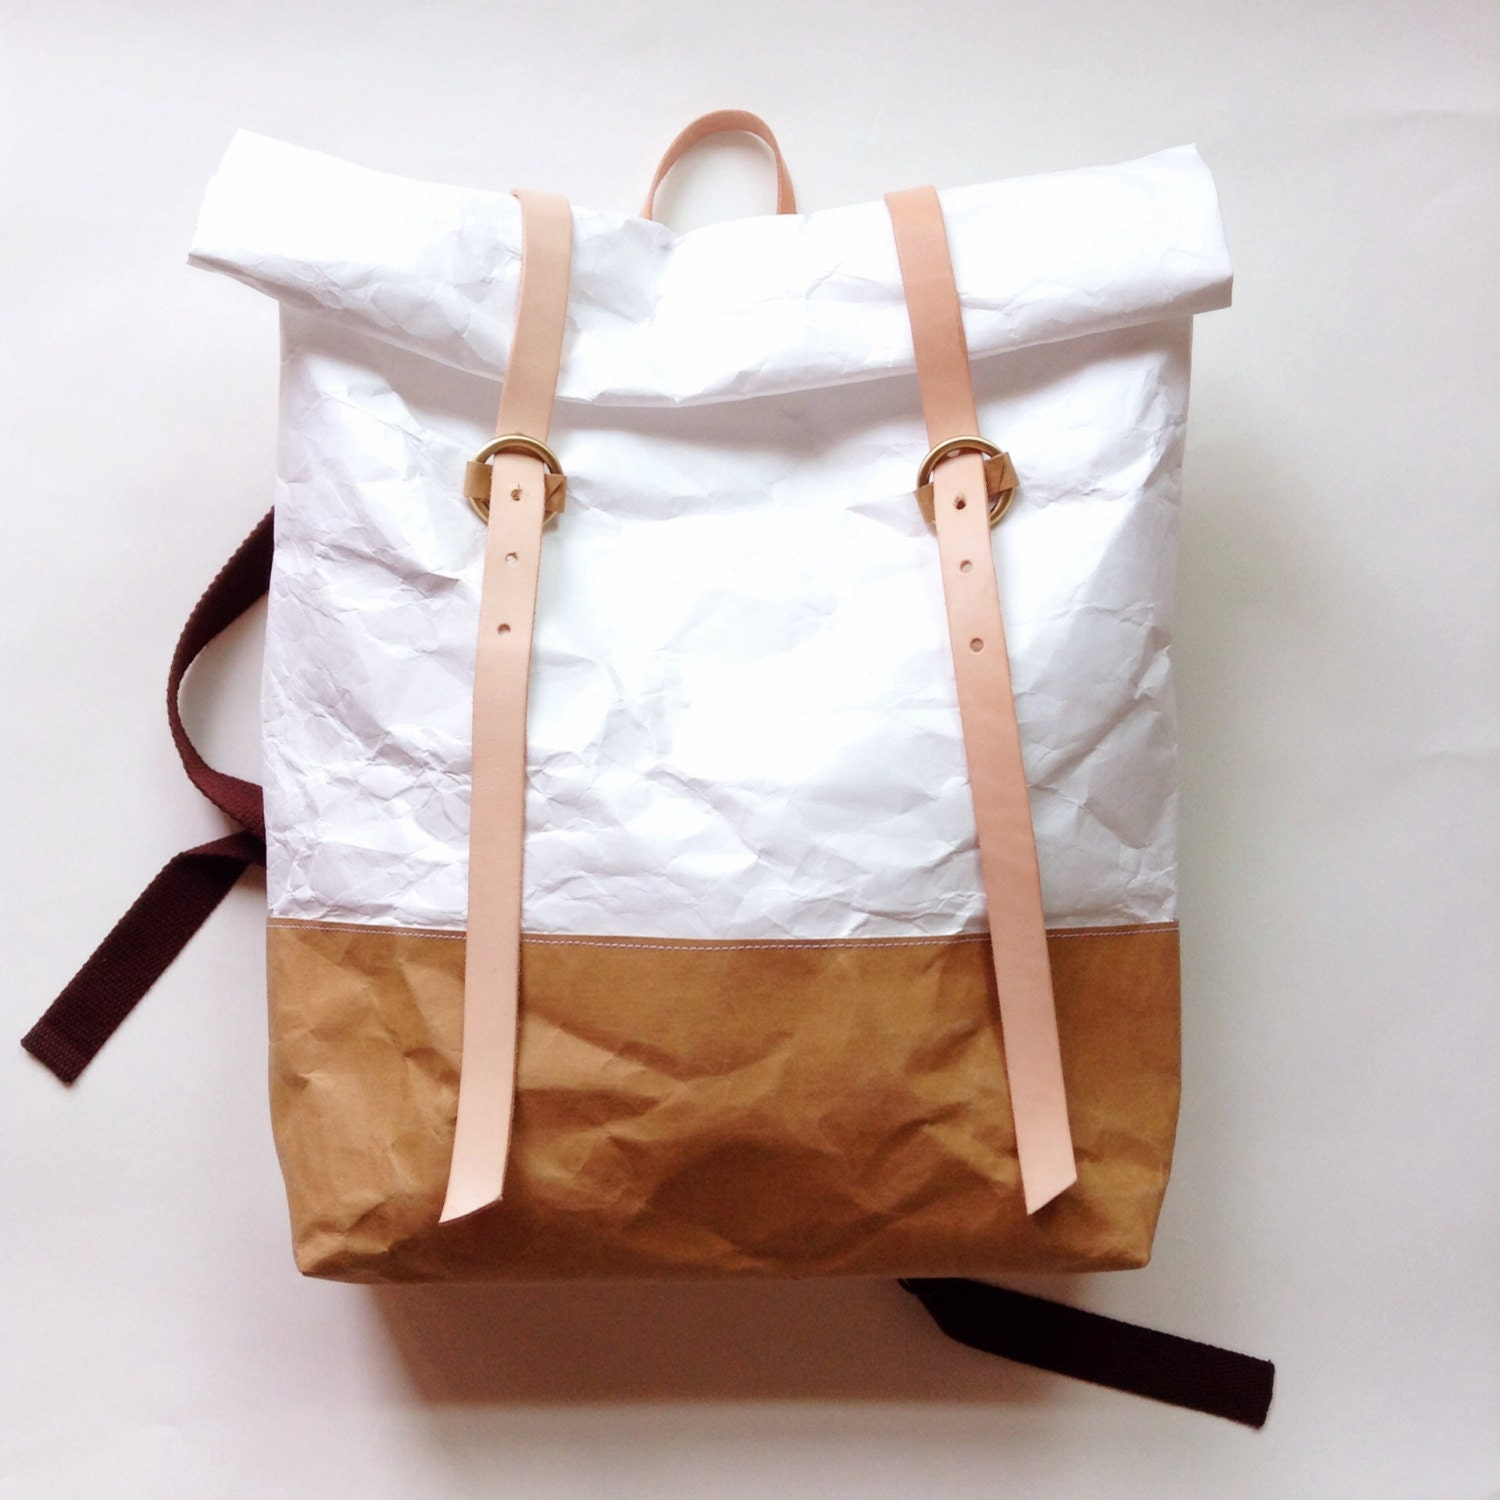 Backpack : Tyvek and Kraft paper roll top backpack/travel